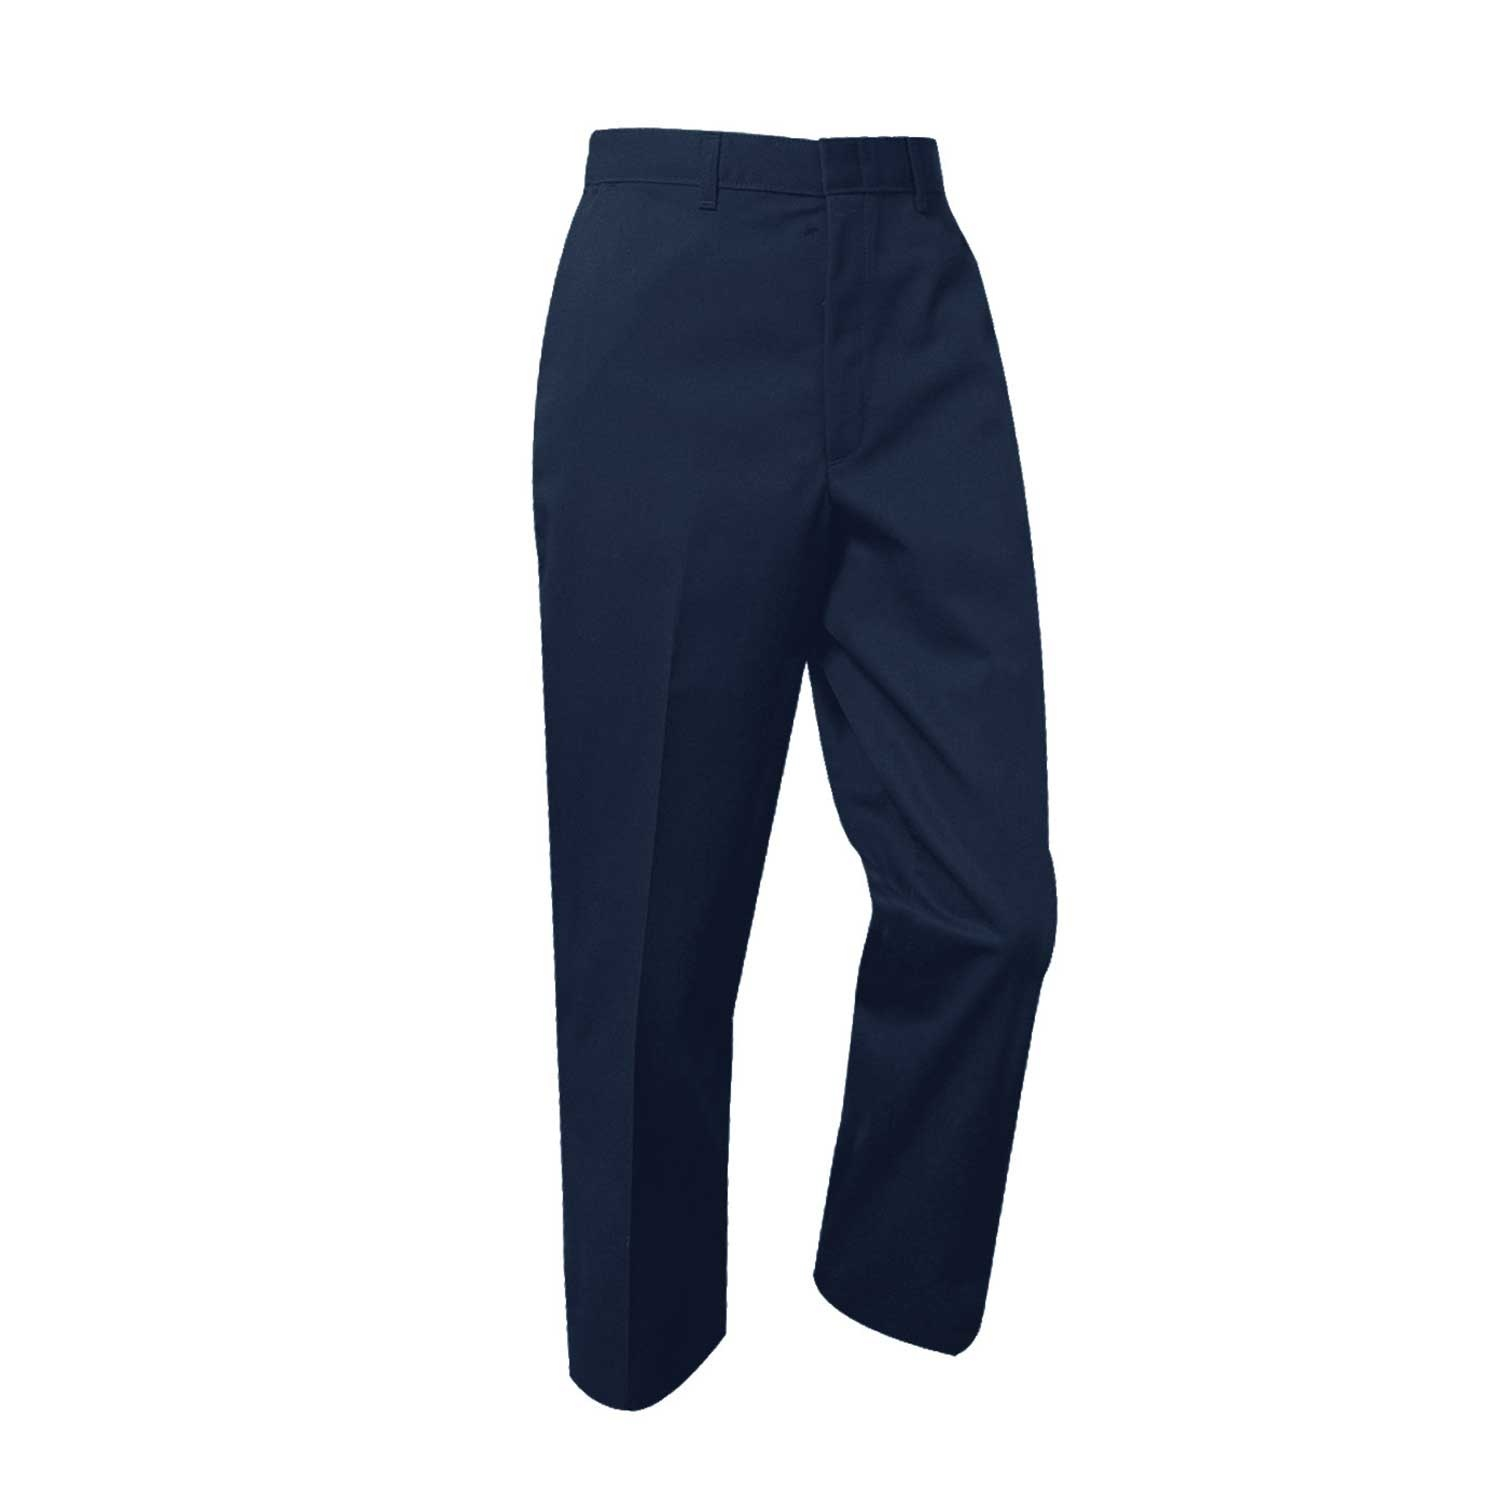 Boys Regular Flat Front w/ Adjustable Waistband Pant (7064R) Navy